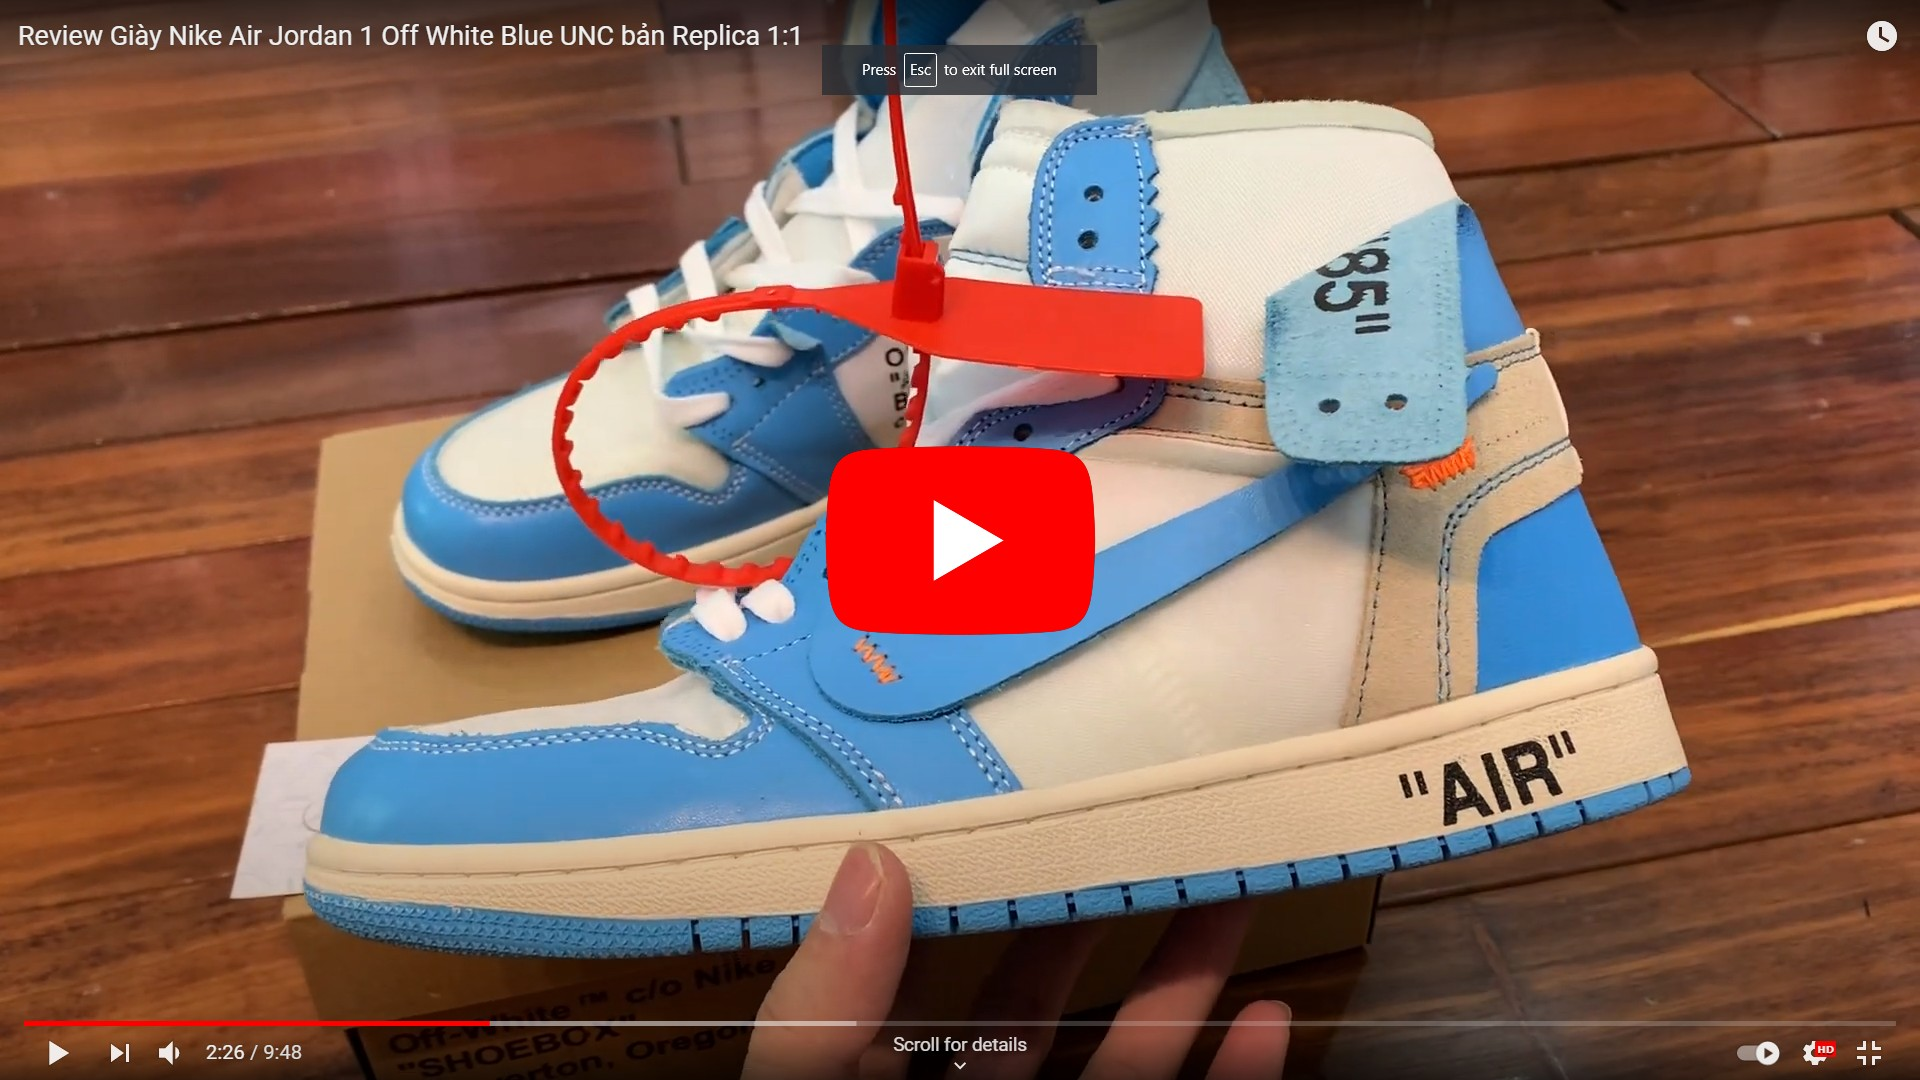 video unbox jordan off white unc blue